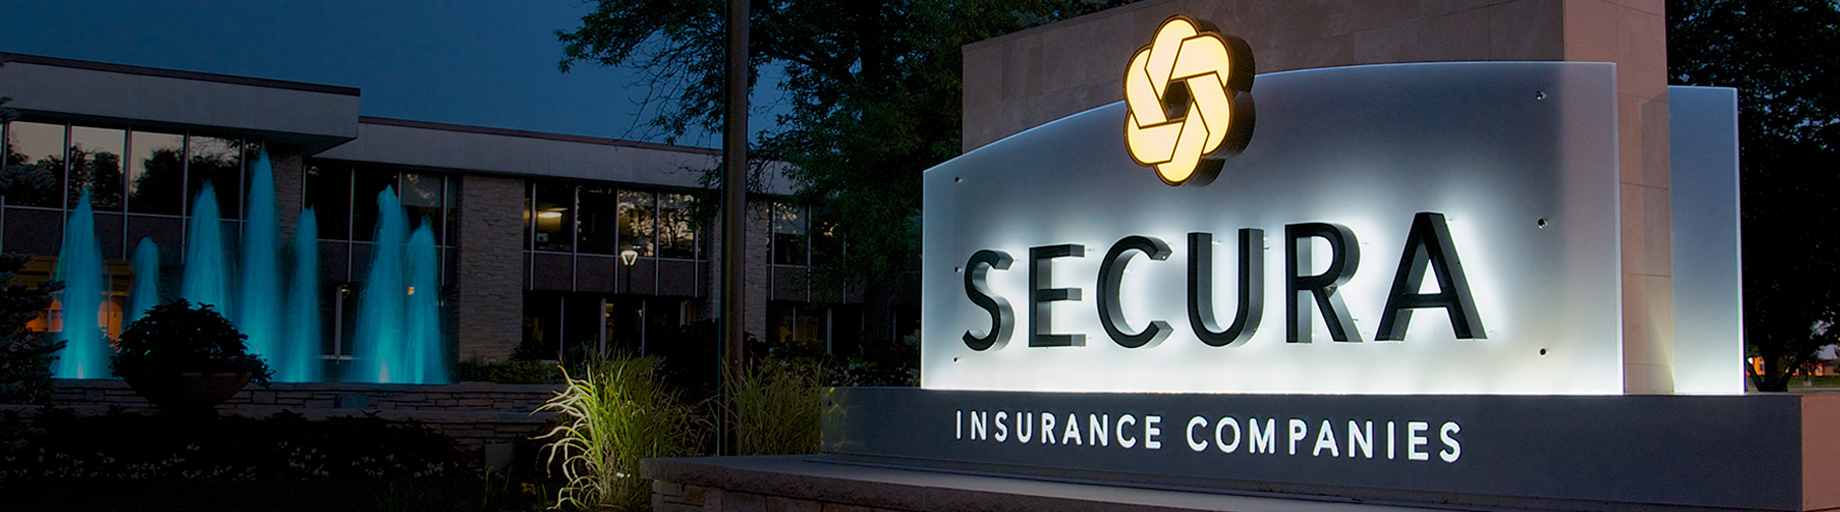 Secura Auto Insurance Phone Number